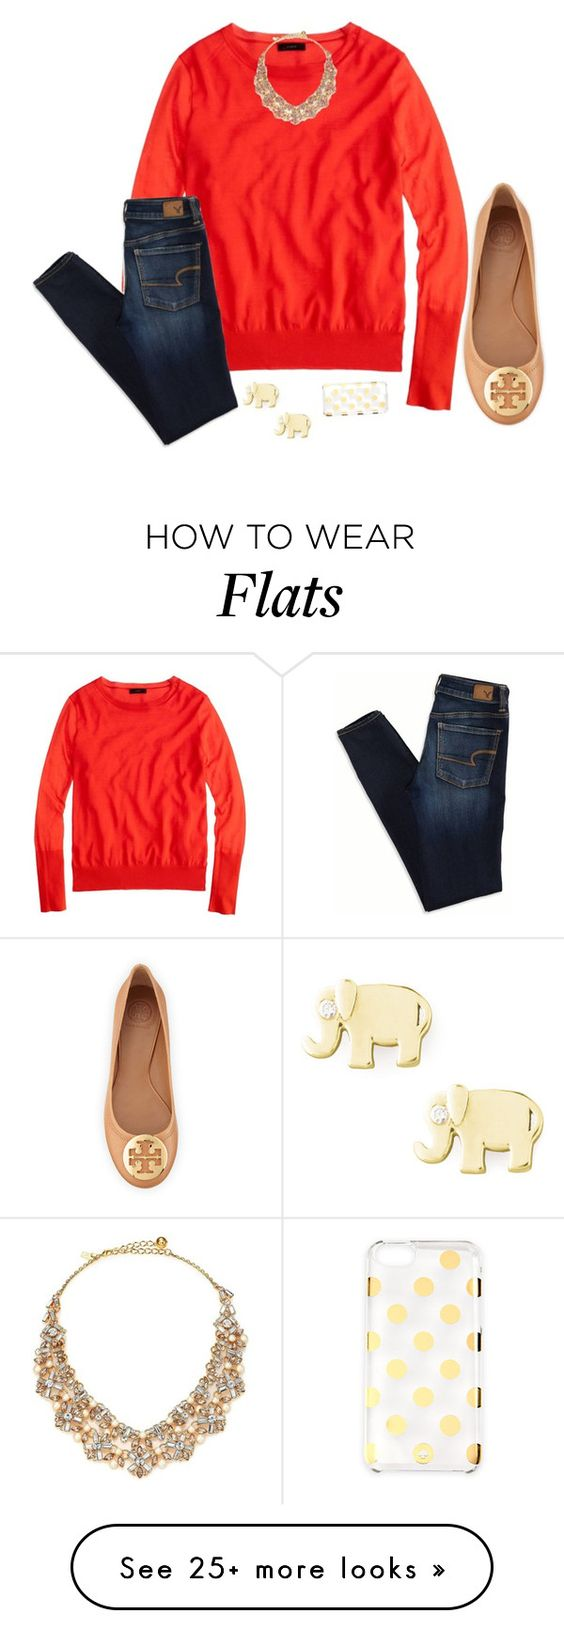 """LOVE TORY BURCH FLATS!"" by harpgirl913 on Polyvore featuring J.Crew, Kate Spade, Tory Burch, American Eagle Outfitters and Sydney Evan:"